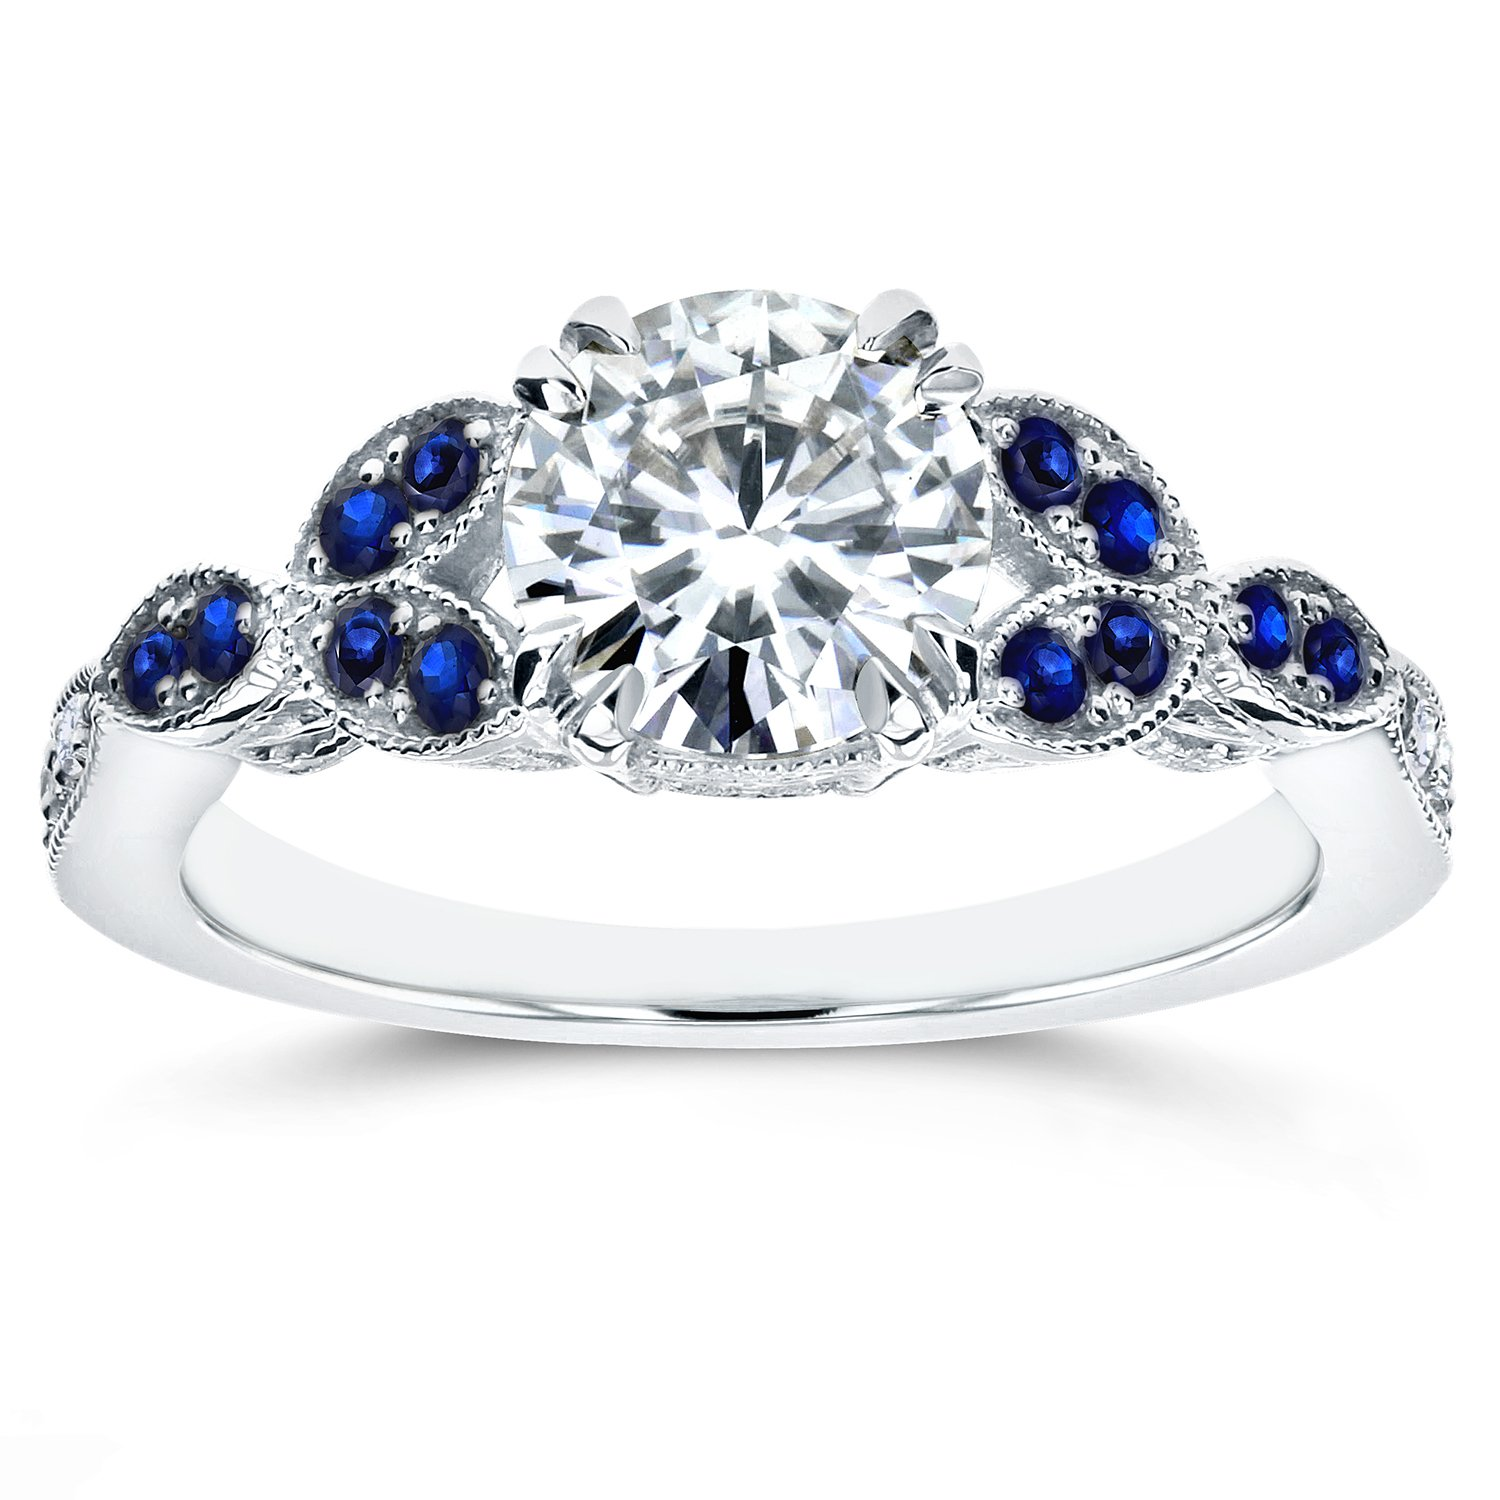 Antique Moissanite and Blue Sapphire Engagement Ring with Diamond Accents 1 1/5 CTW 14k White Gold, Size 7